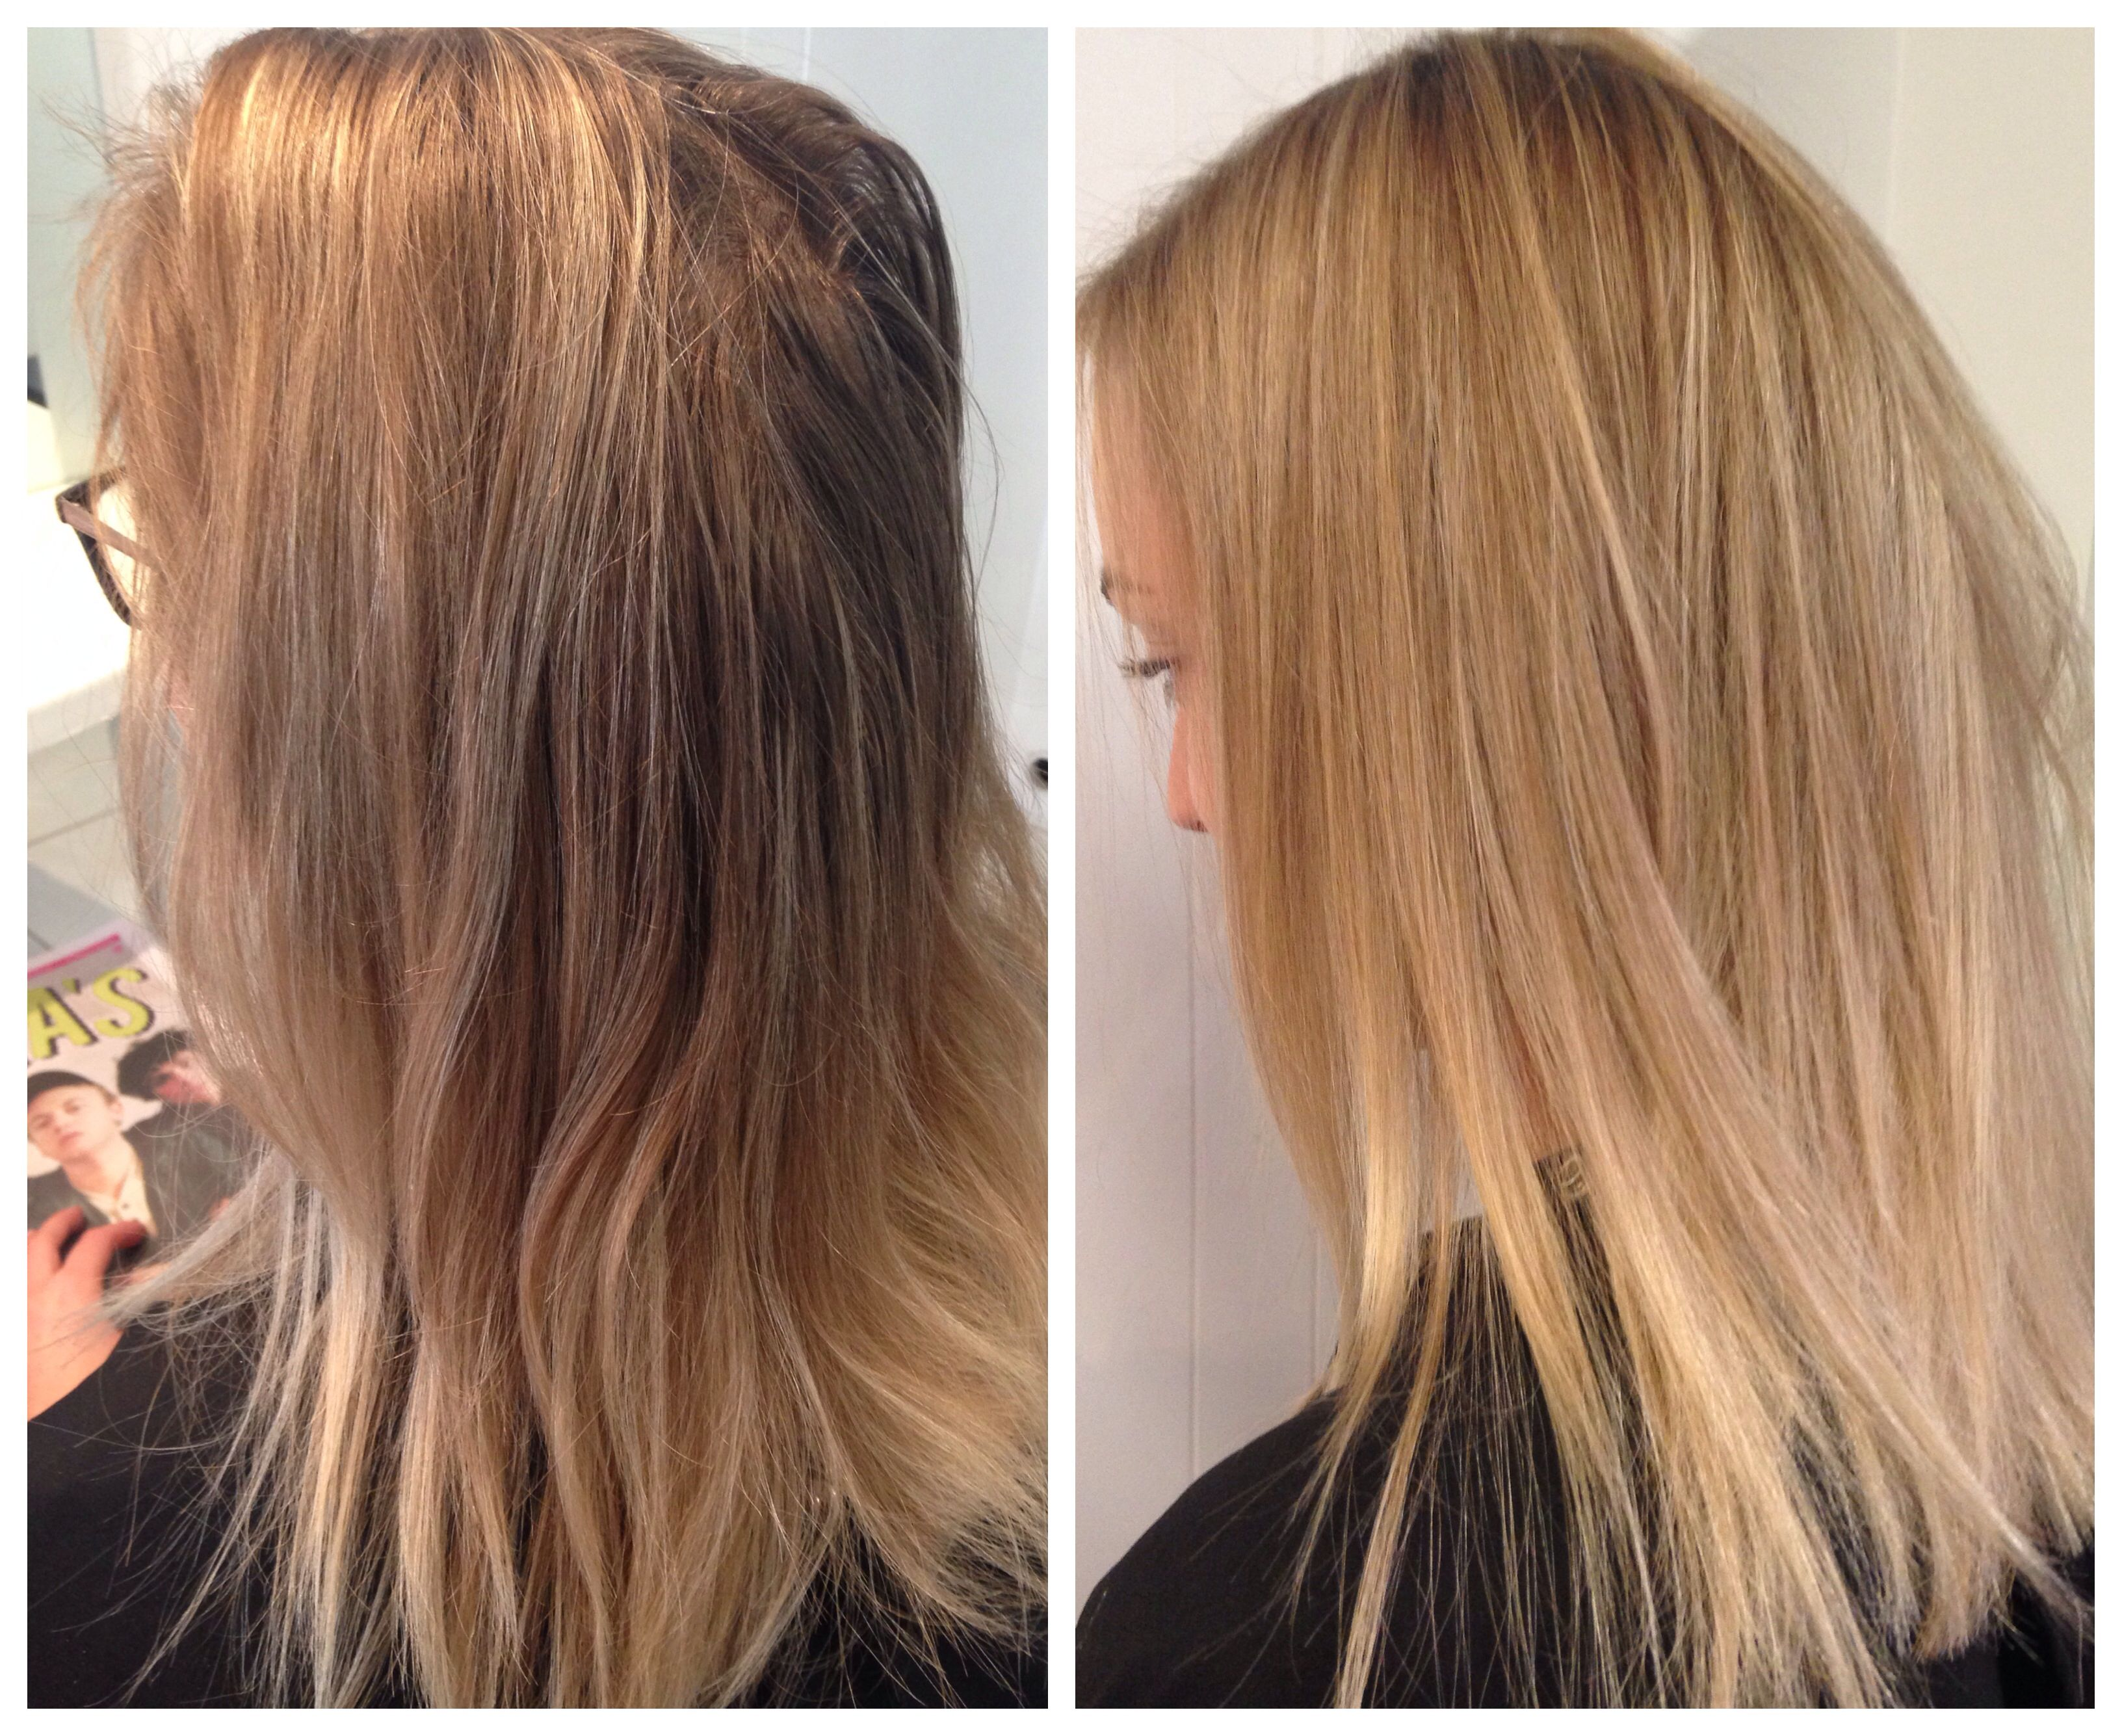 Full Head Foils With Depth Added Into Roots For Soft Contrast